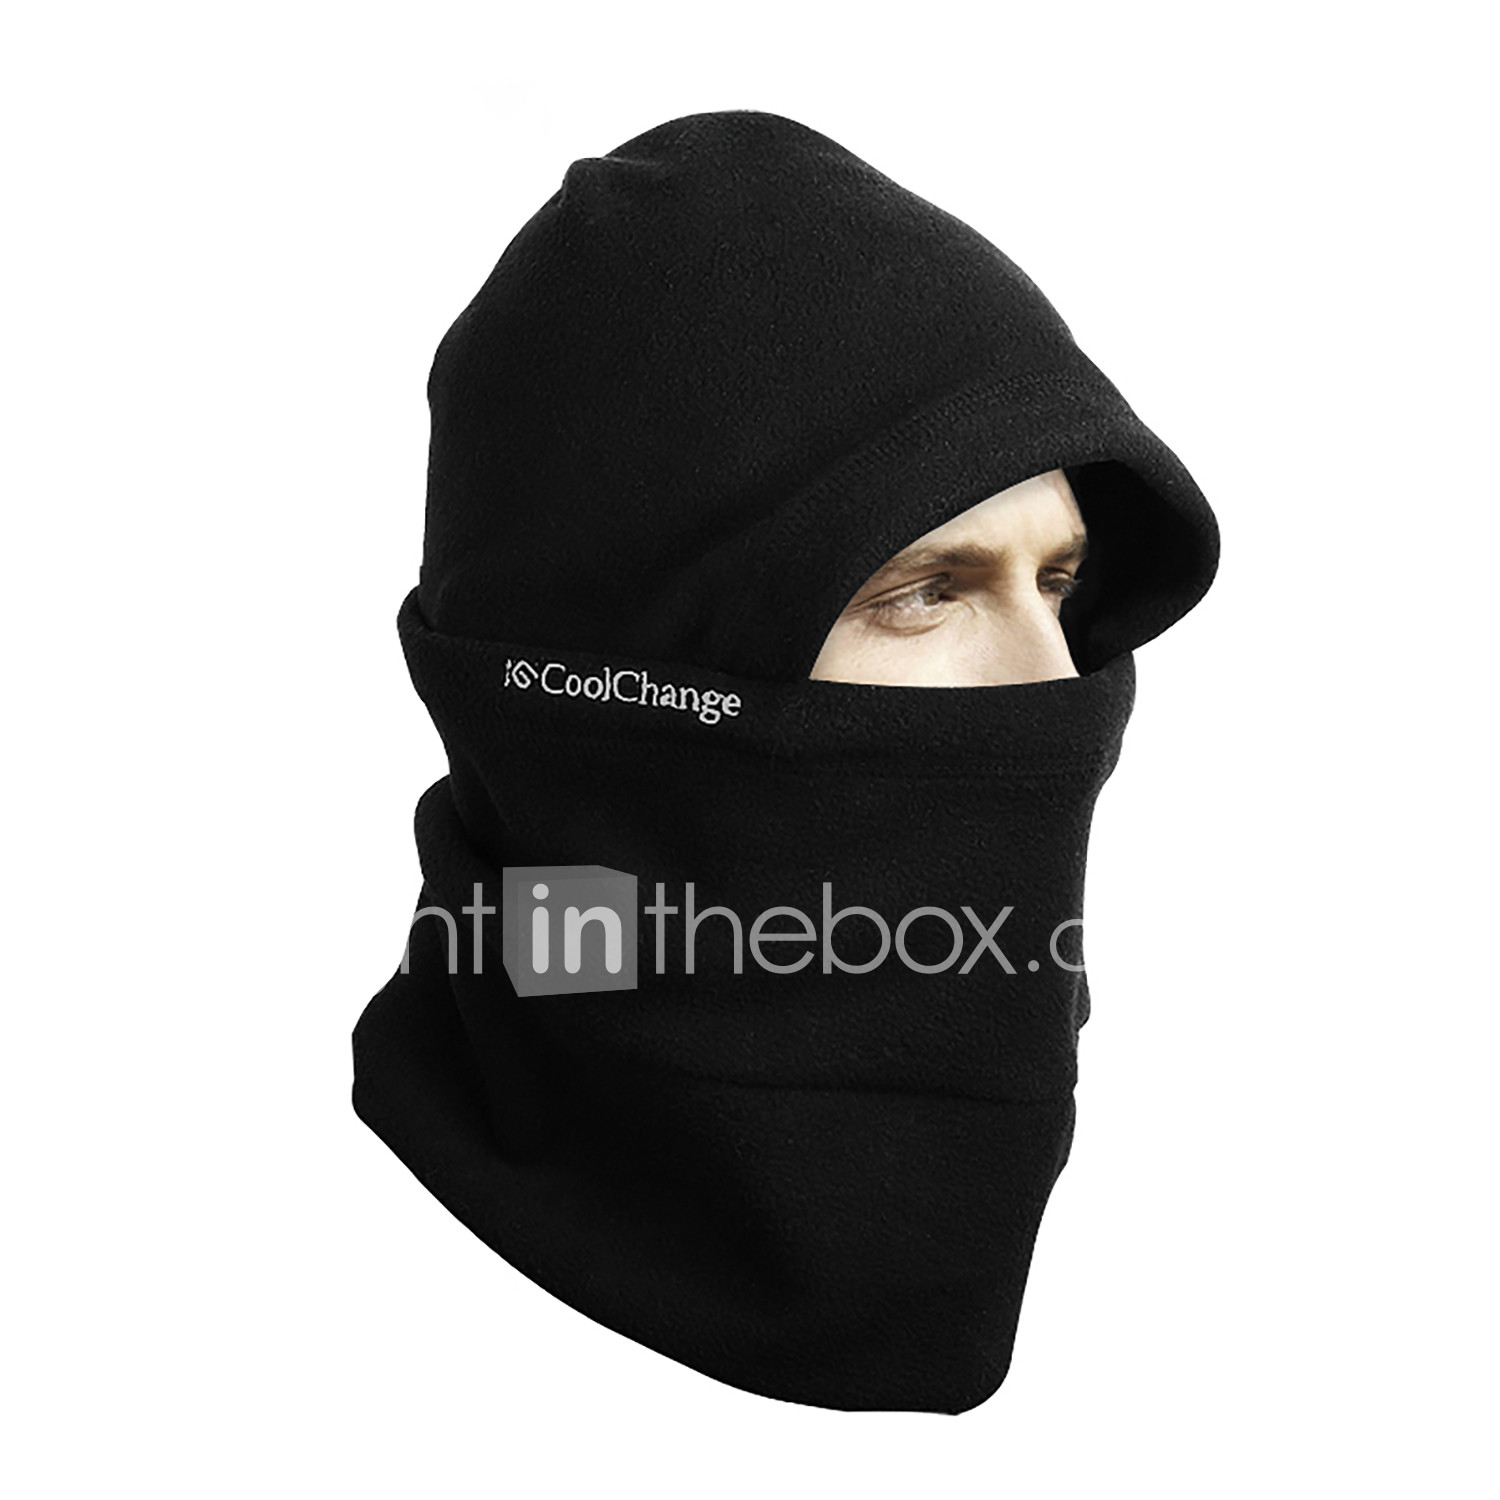 426cfa7df CoolChange Balaclava Solid Color Thermal / Warm Breathable Camping & Hiking  Warm Dust Proof Bike / Cycling Black Wool Fleece Winter for Men's Women's  ...